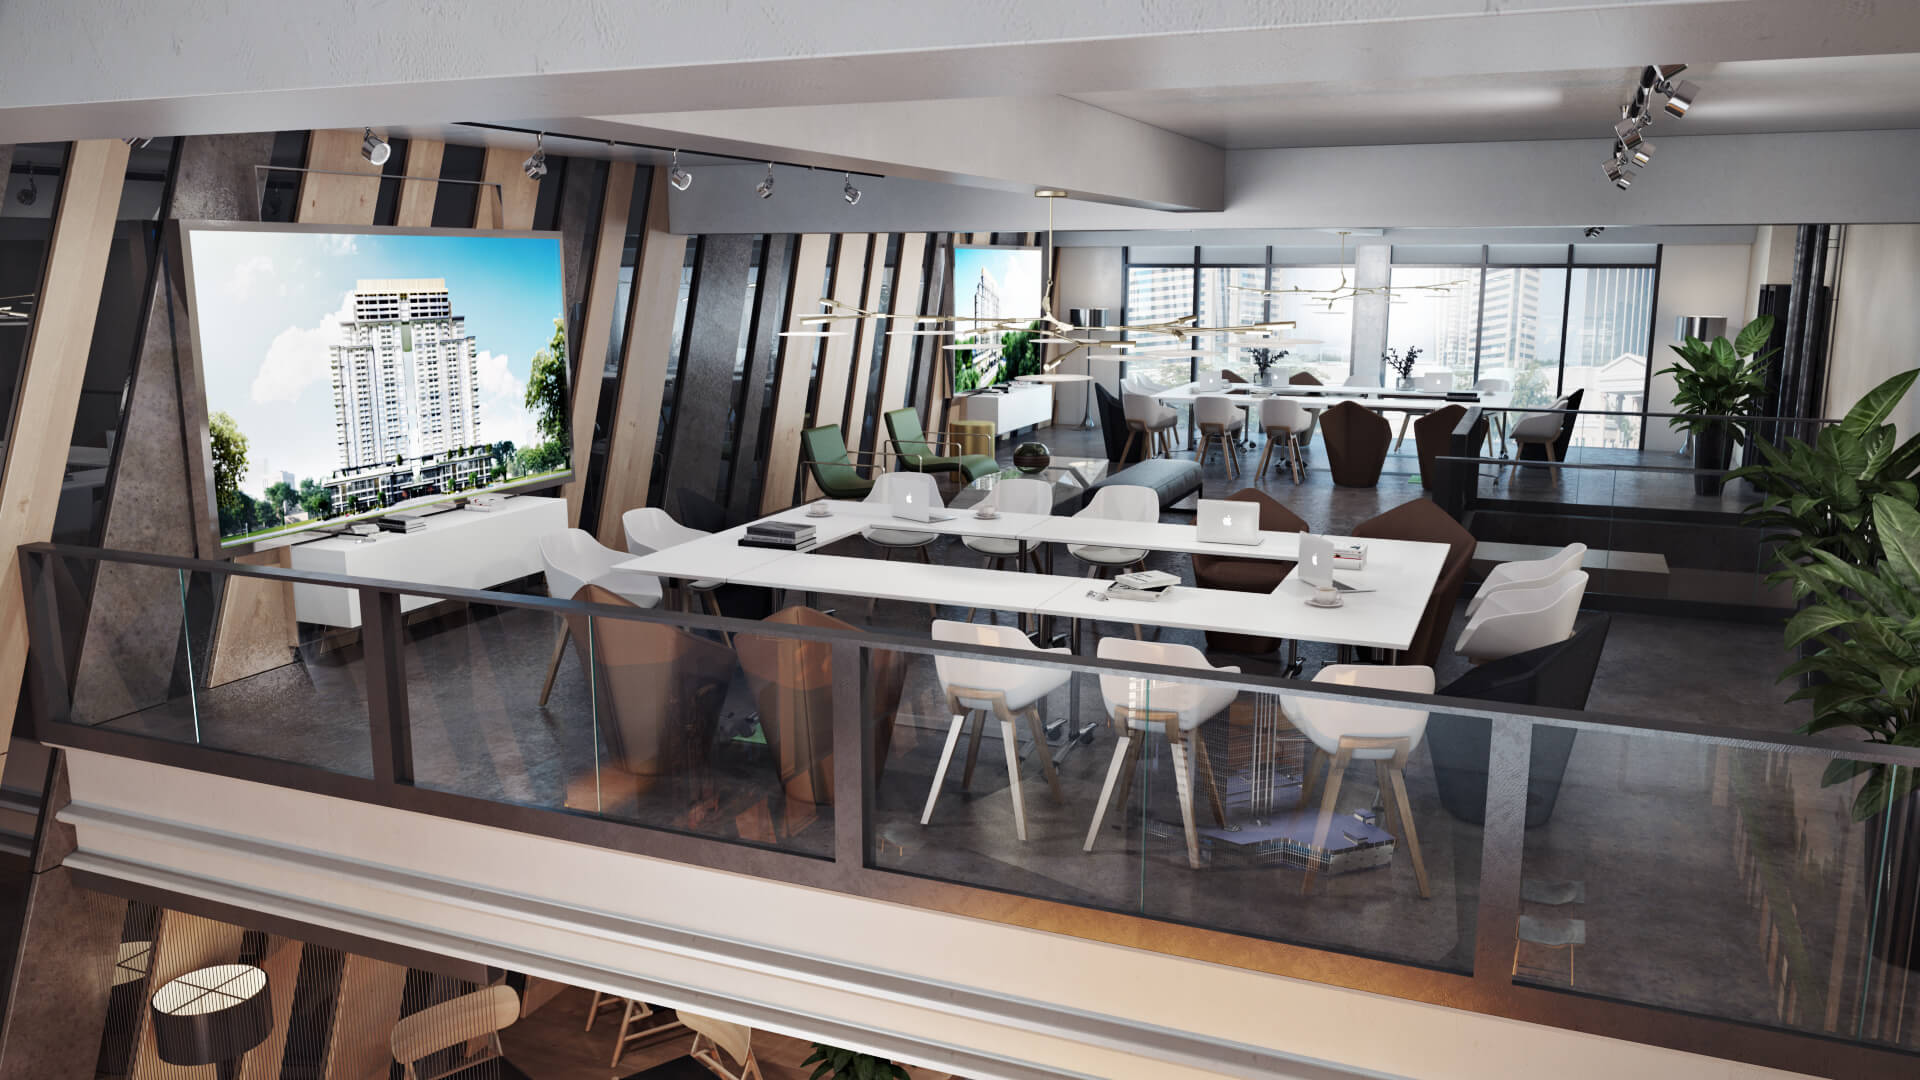 Photorealistic 3D Rendering for a Chic Office Design